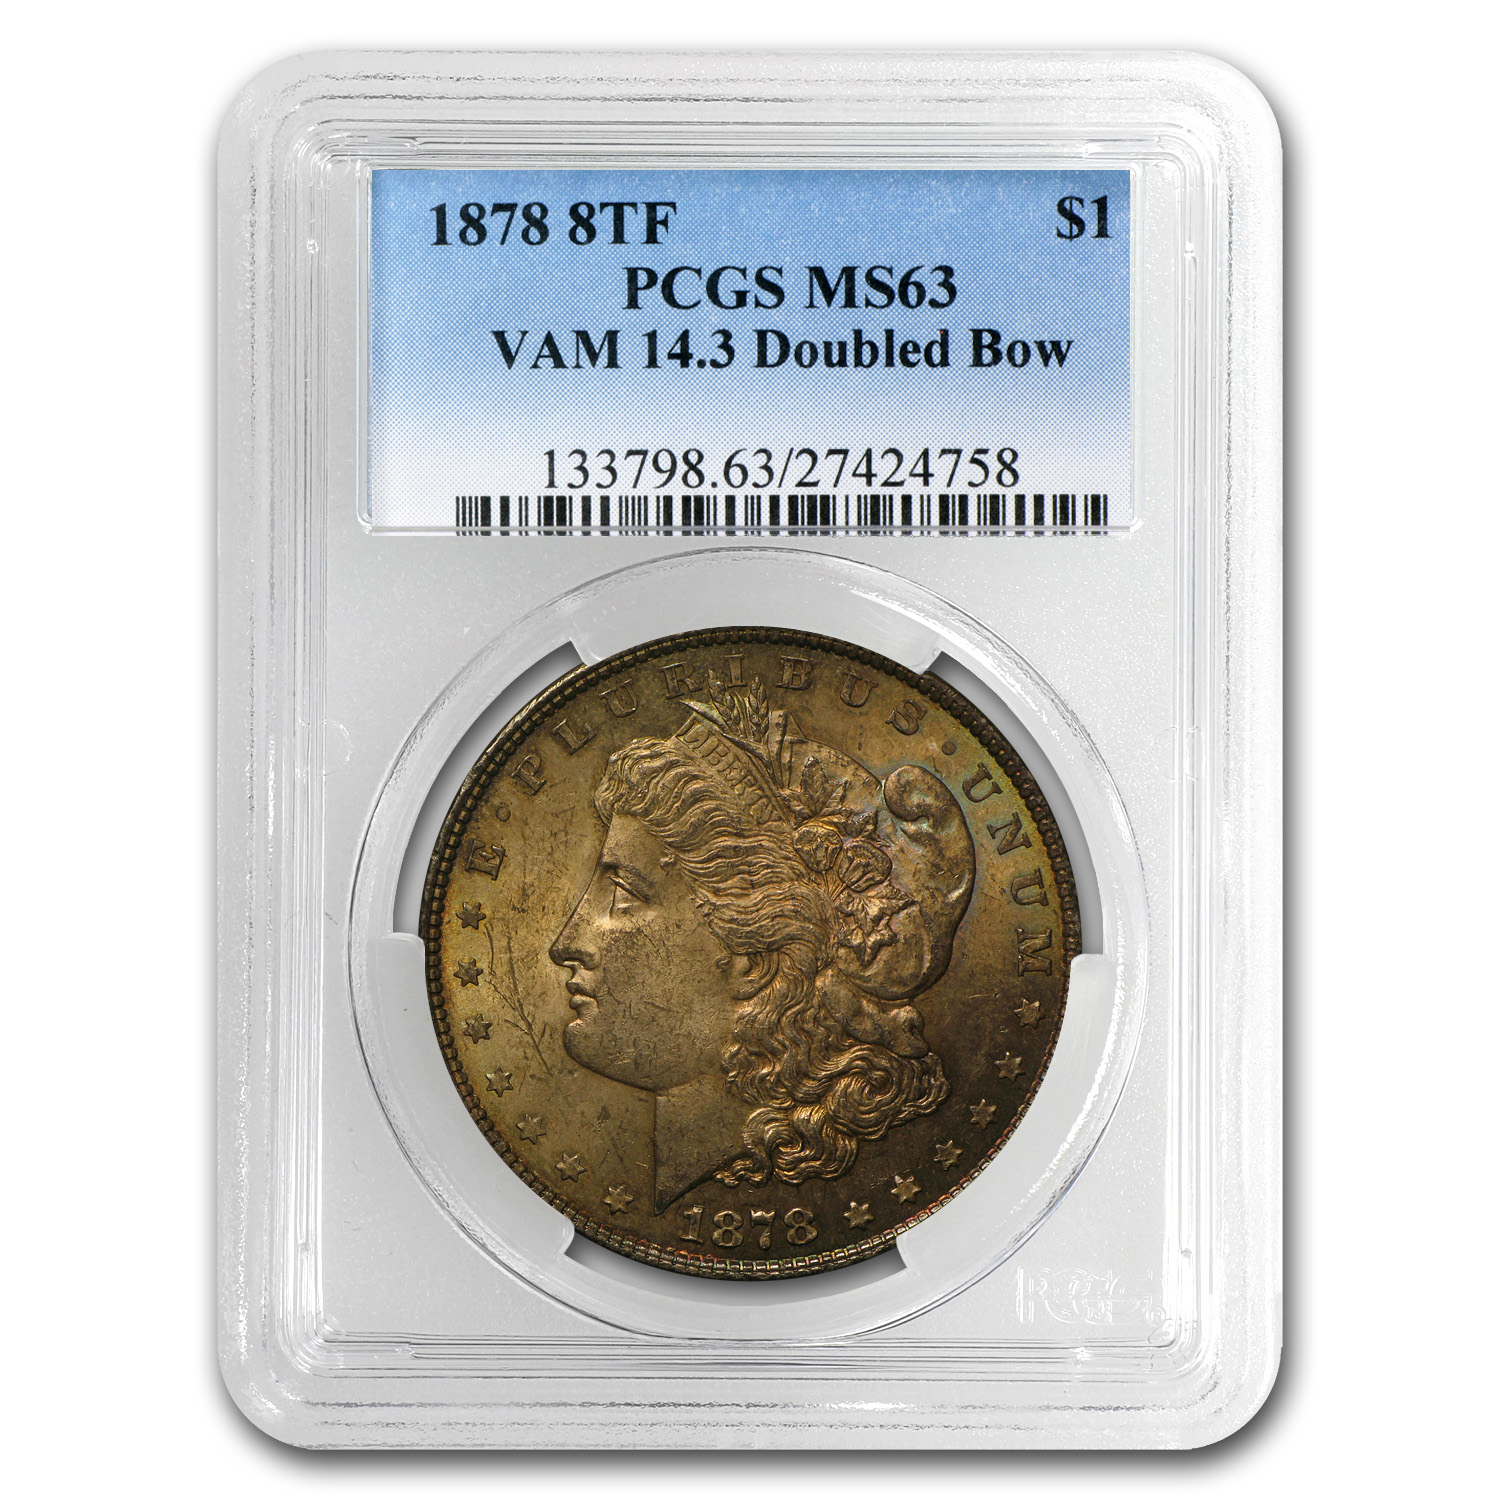 1878 Morgan Dollar - 8 Tailfeathers MS-63 PCGS - VAM-14.3